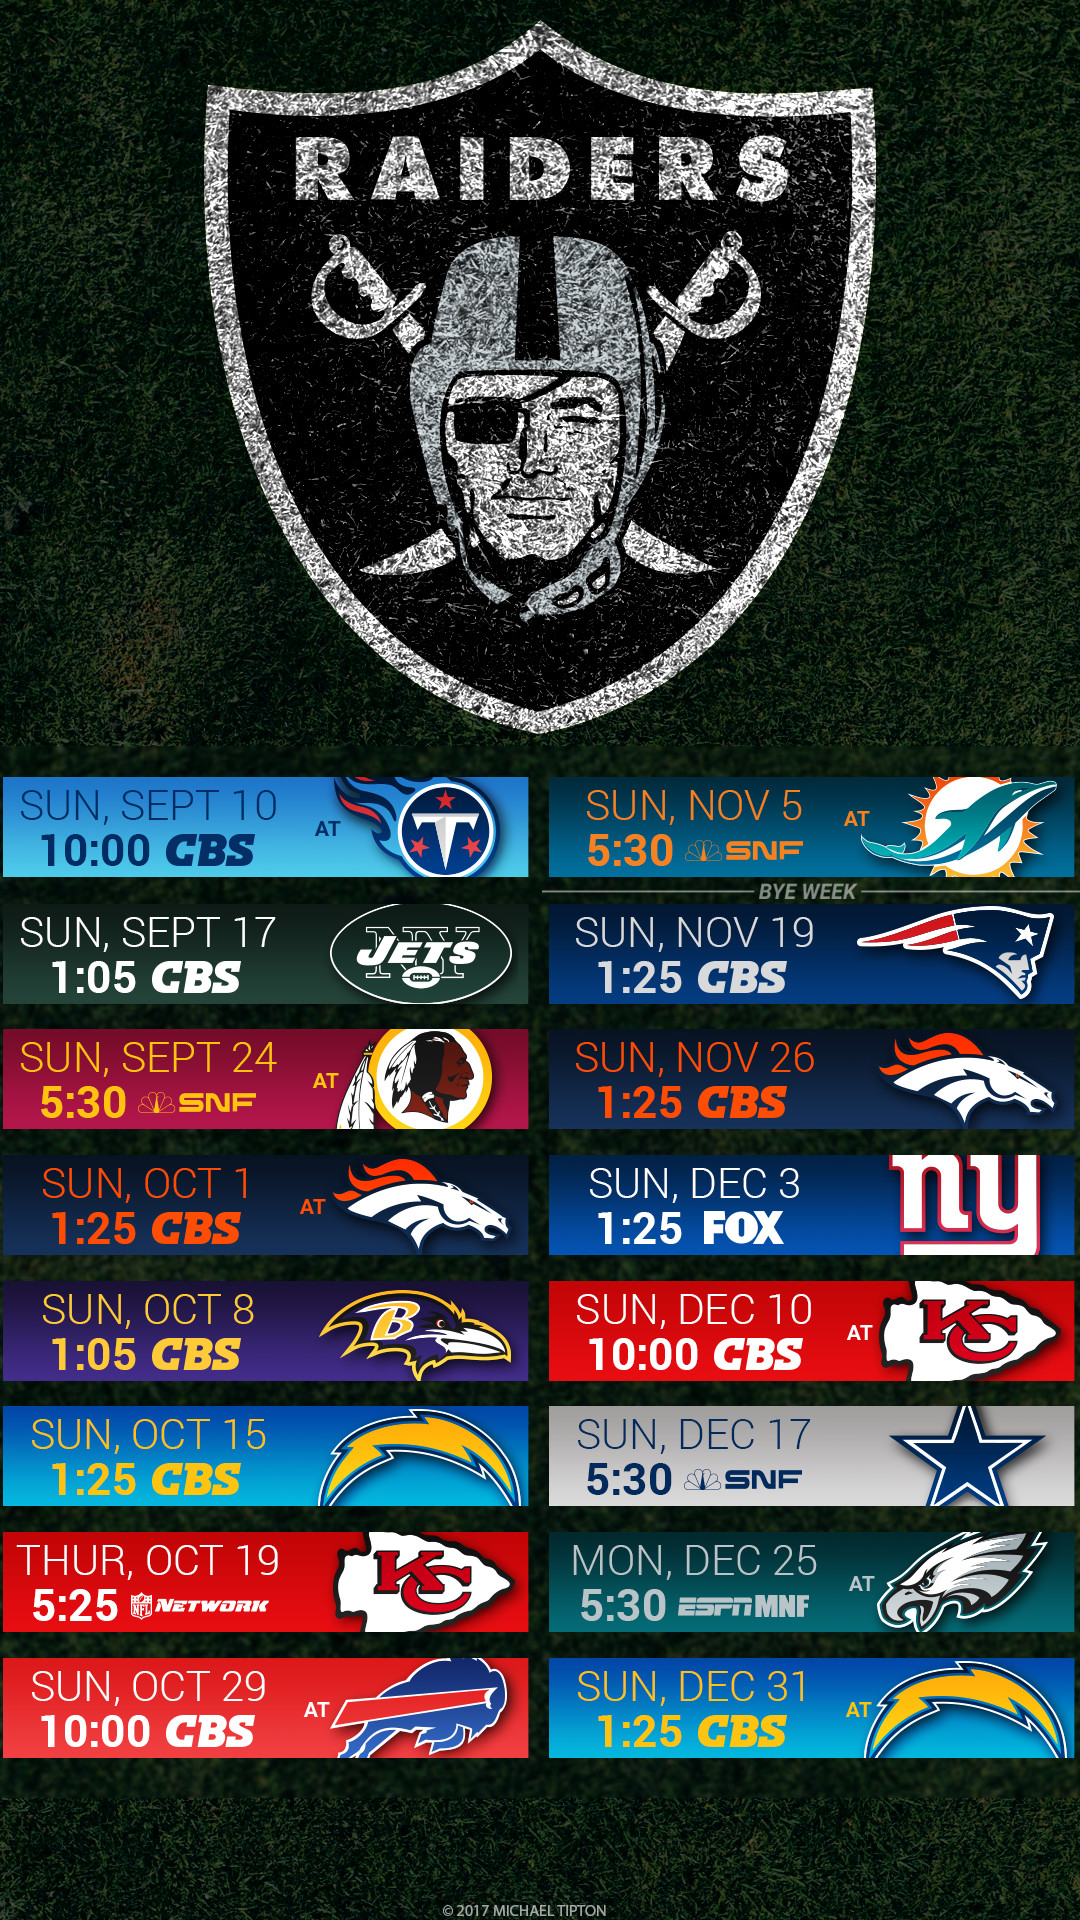 1080x1920 Oakland Raiders 2017 schedule turf logo wallpaper free iphone 5, 6, 7, ...